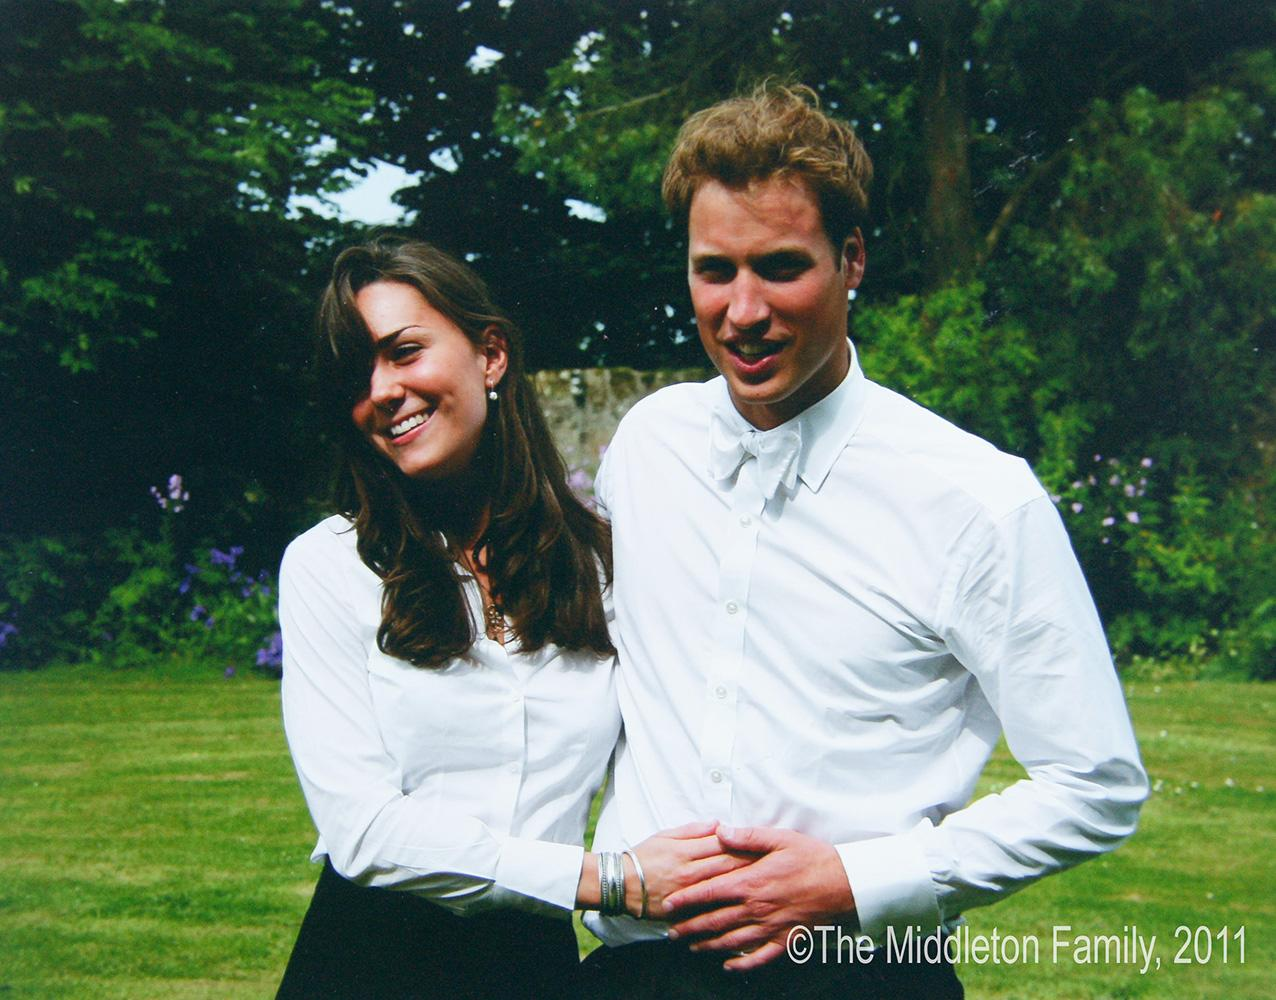 Kate Middleton and Prince William on the day of their graduation ceremony at St. Andrews University.